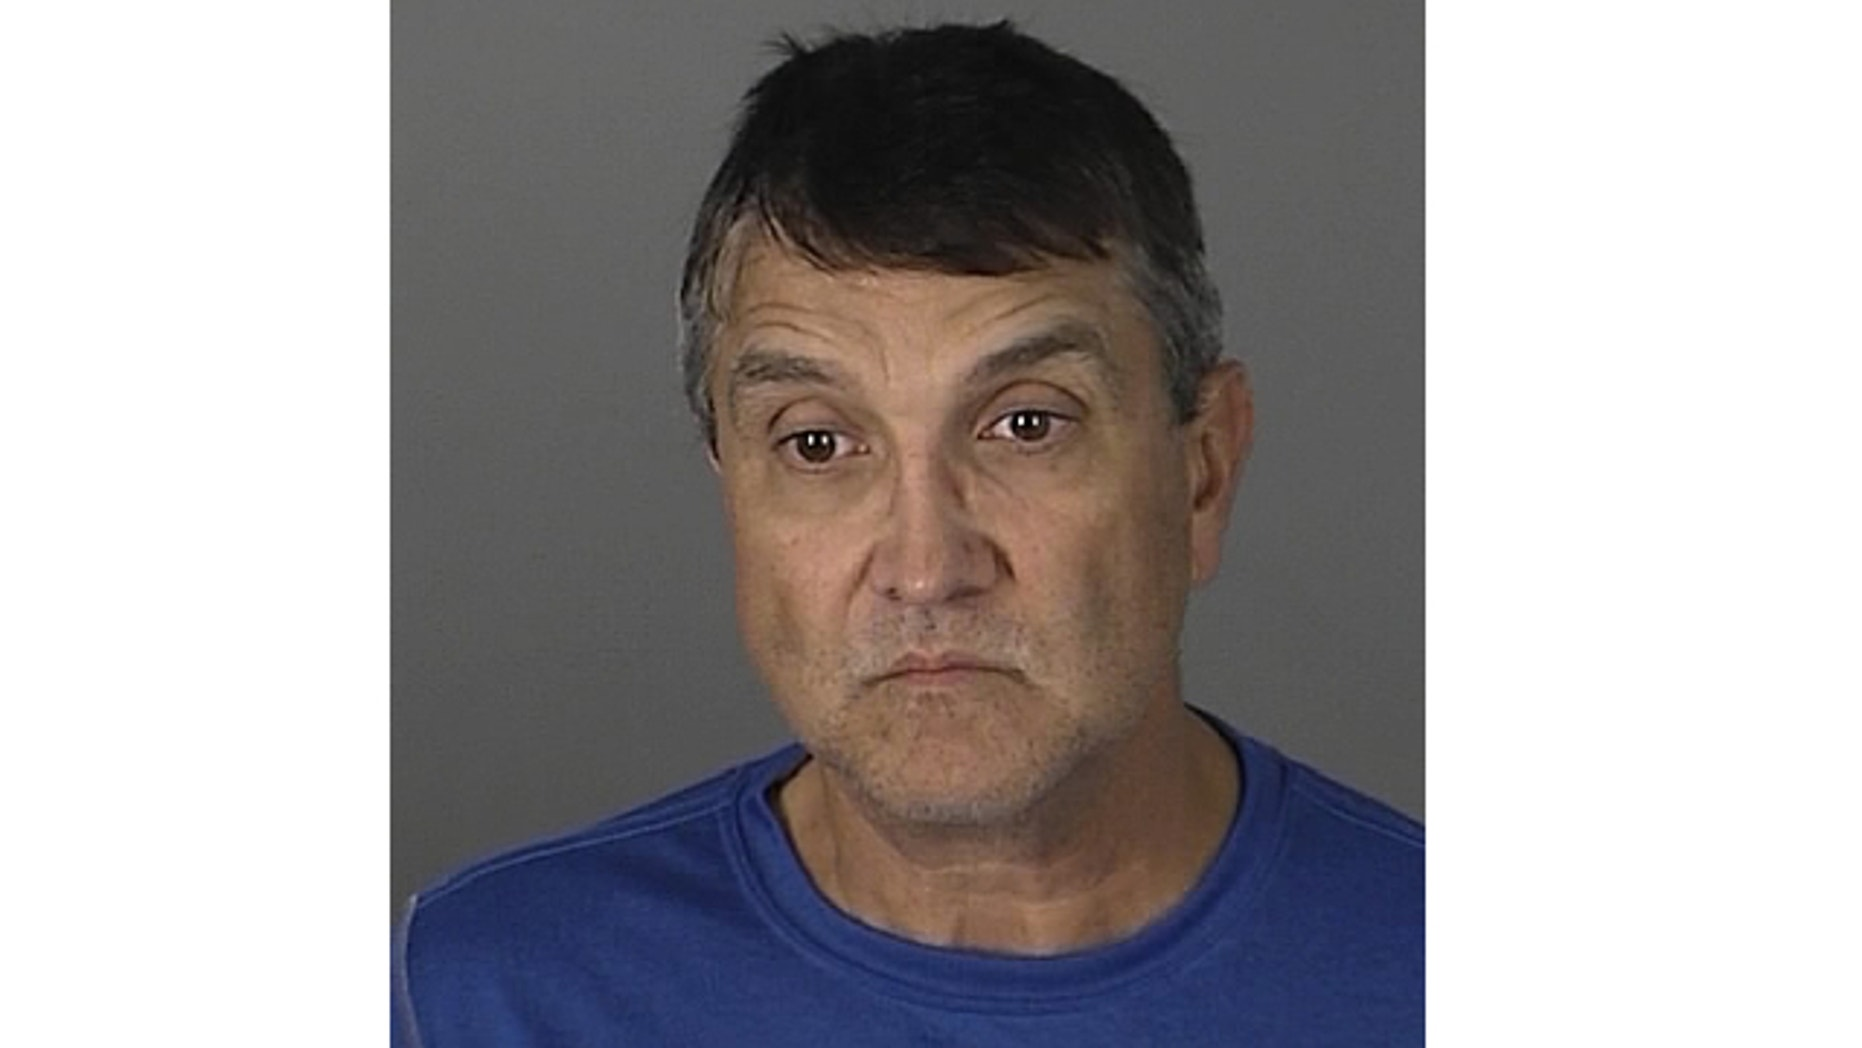 Feb. 15, 2012: This photo provided by the Pasco County Sheriff's Office shows Lonnie Kocontes.